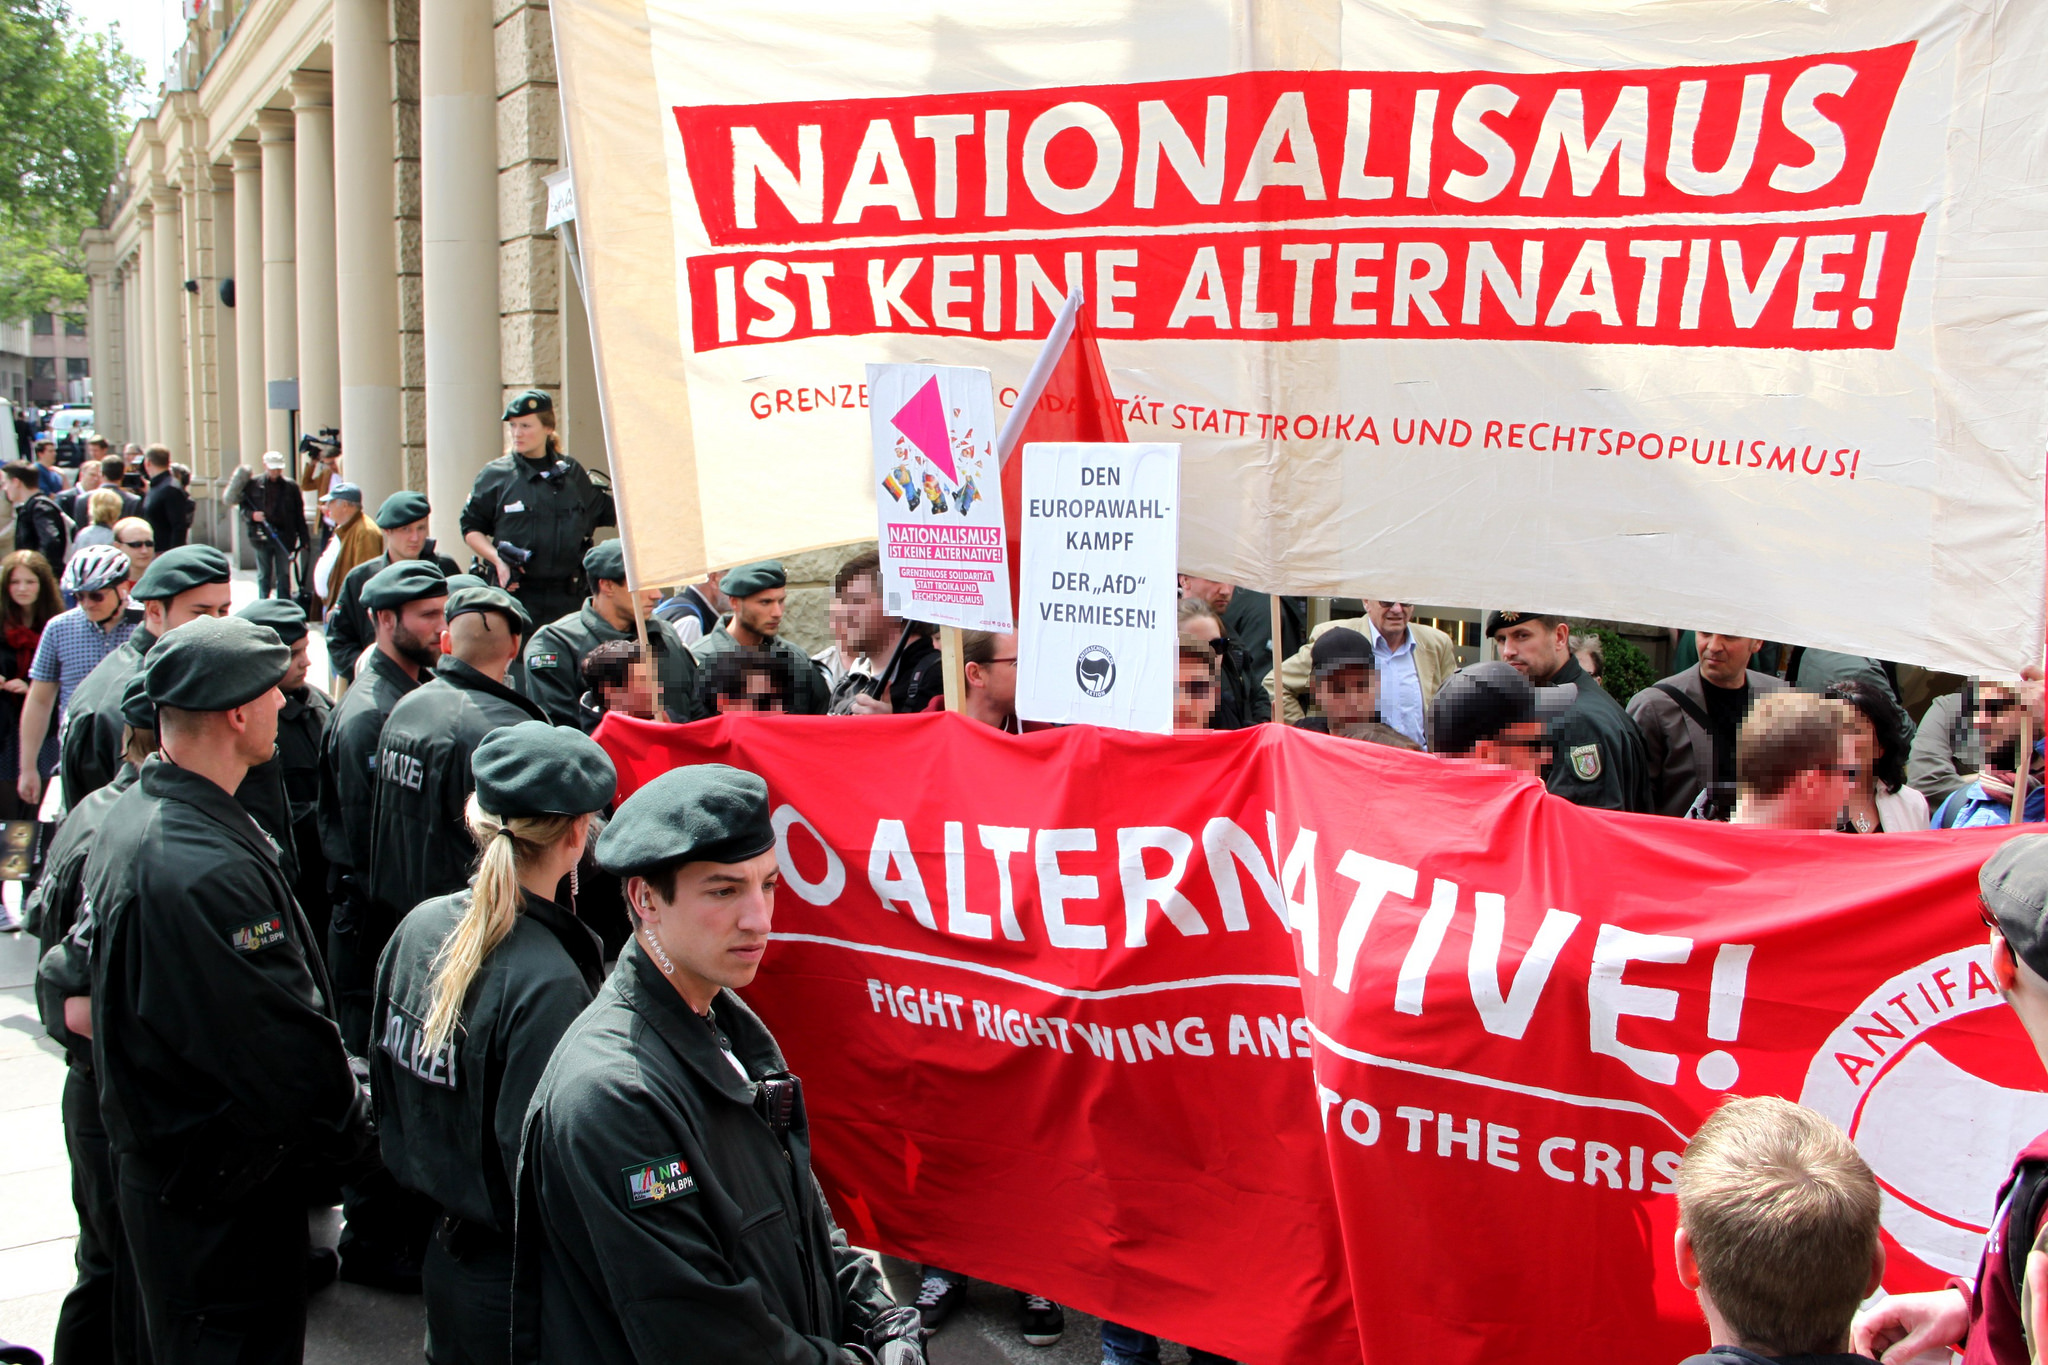 Anti-AfD protest in Germany. 'Although the party has a rightist conservative ideology and uses populist strategies, AfD in itself is not populist, anti-EU or racist.' Source: Flickr / strassenstriche.net